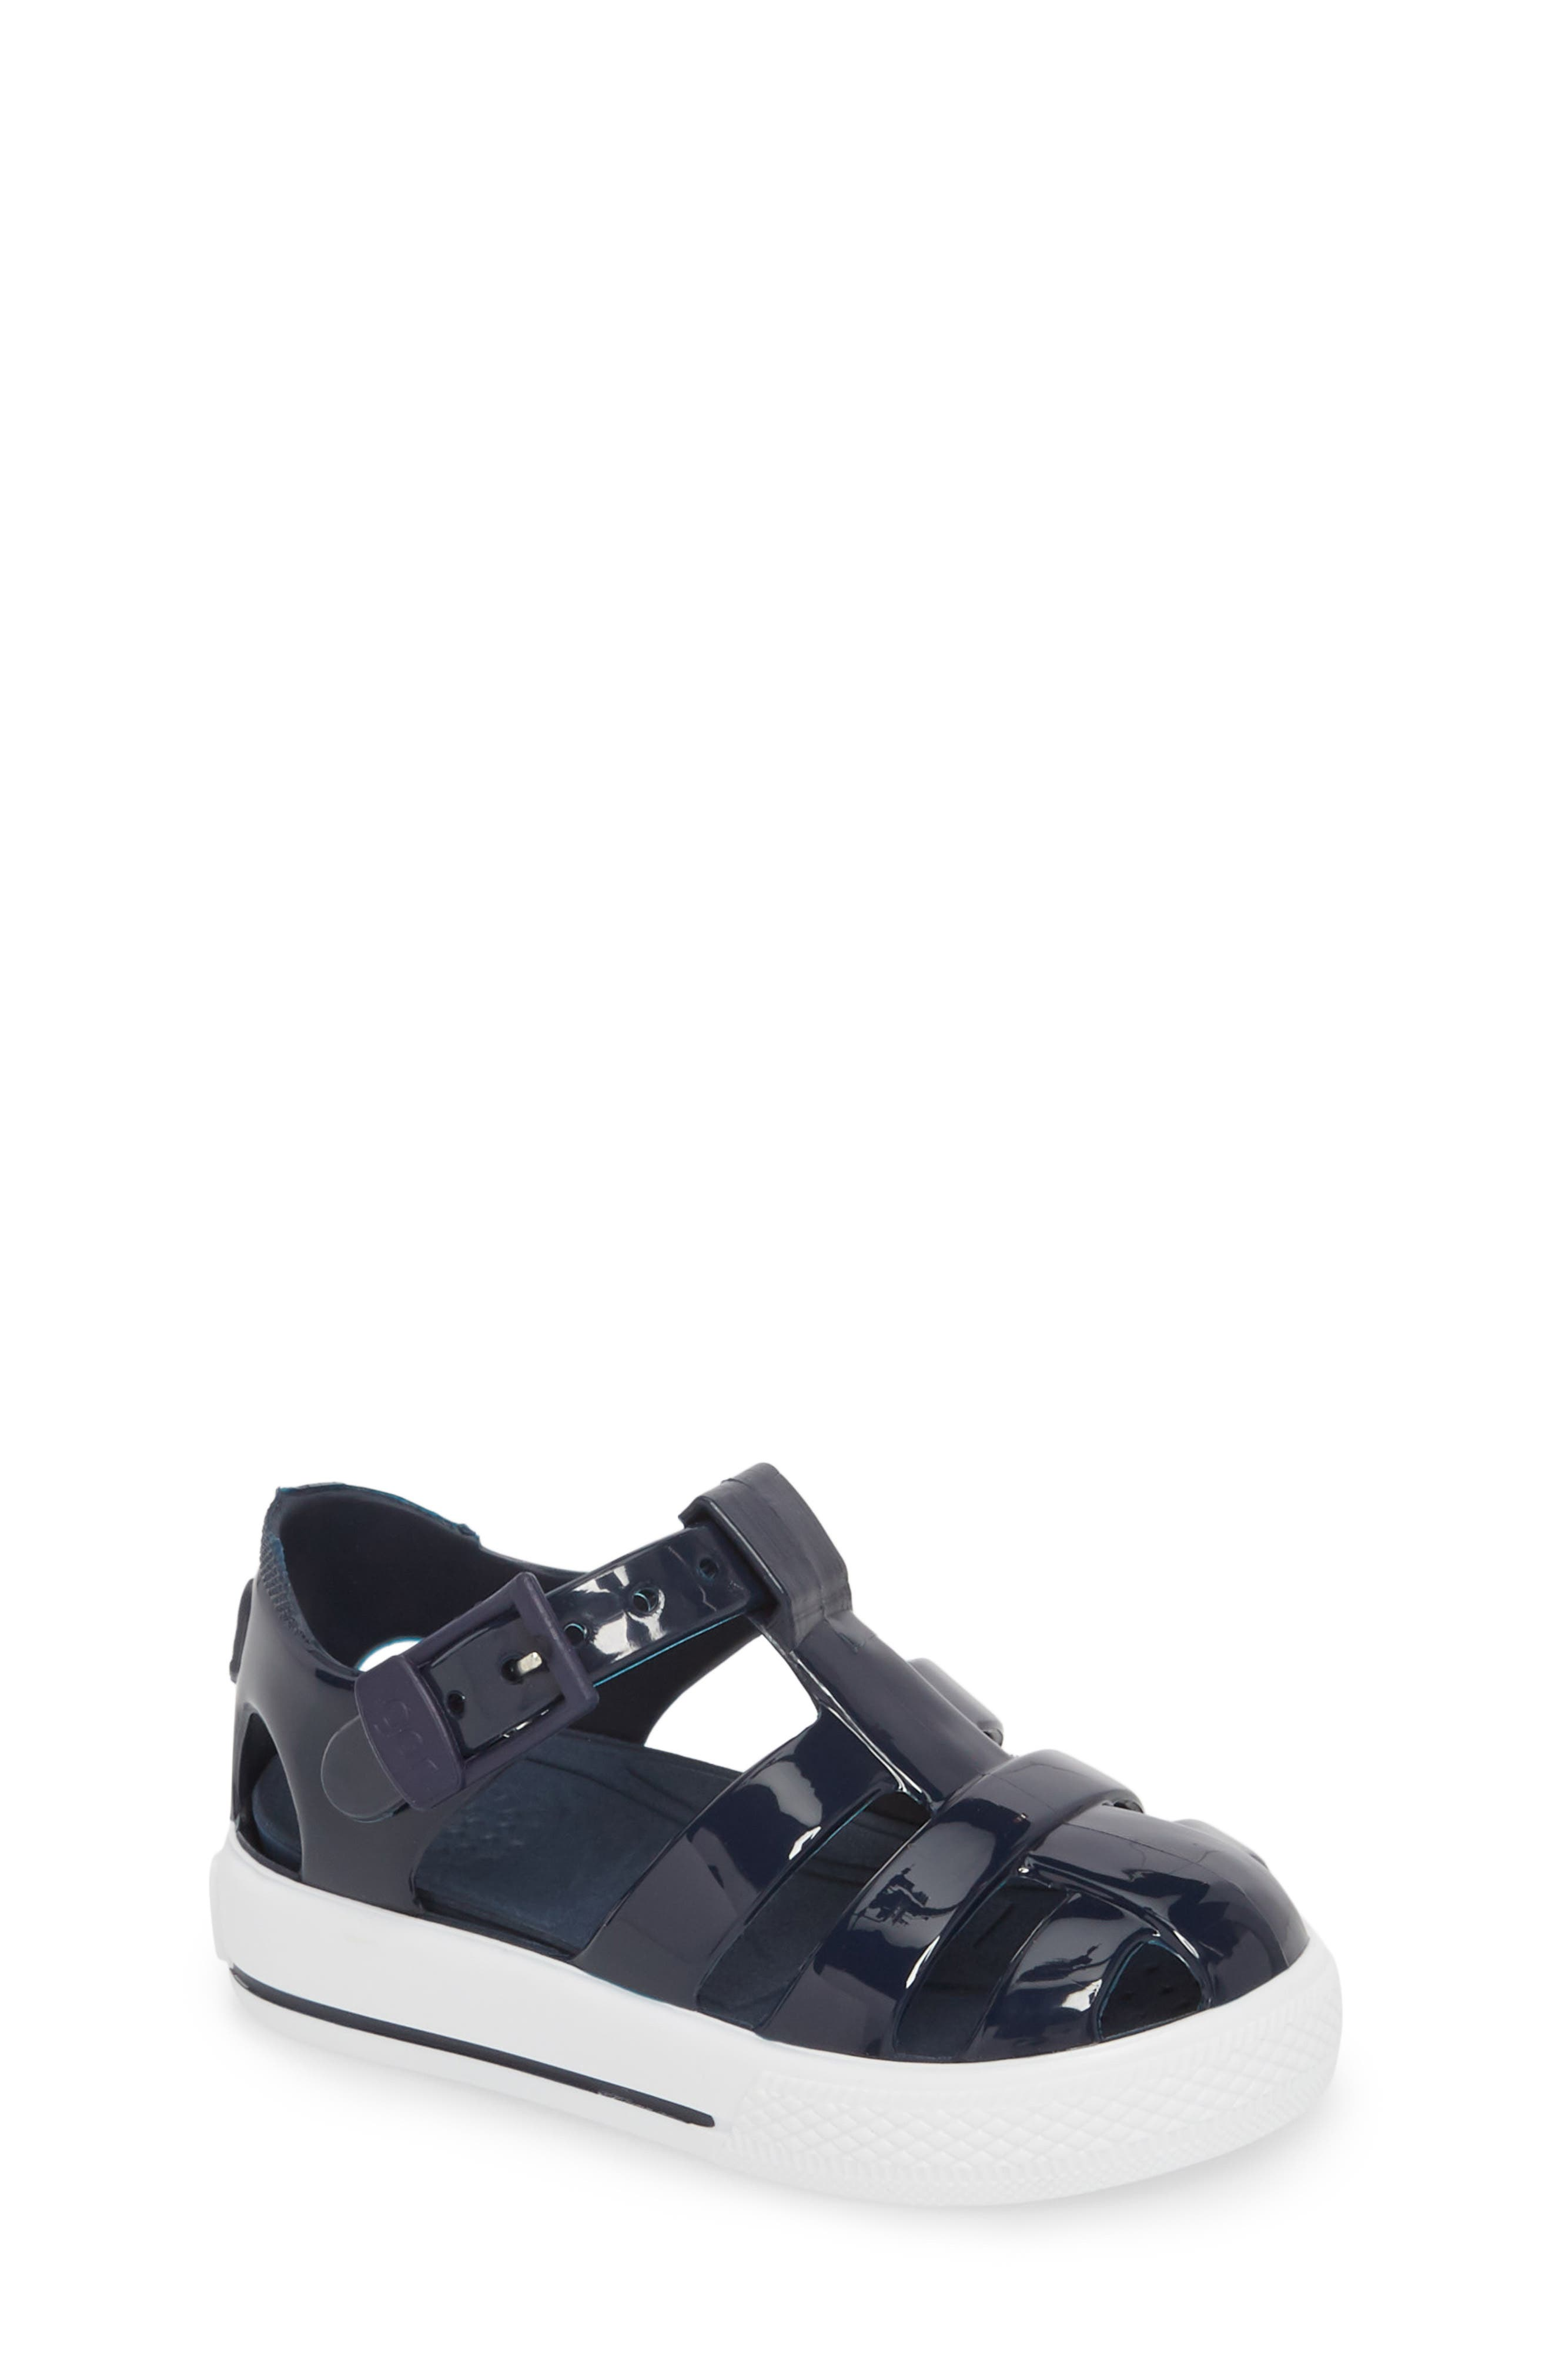 Tenis Fisherman Jelly Sandal,                             Main thumbnail 1, color,                             Navy